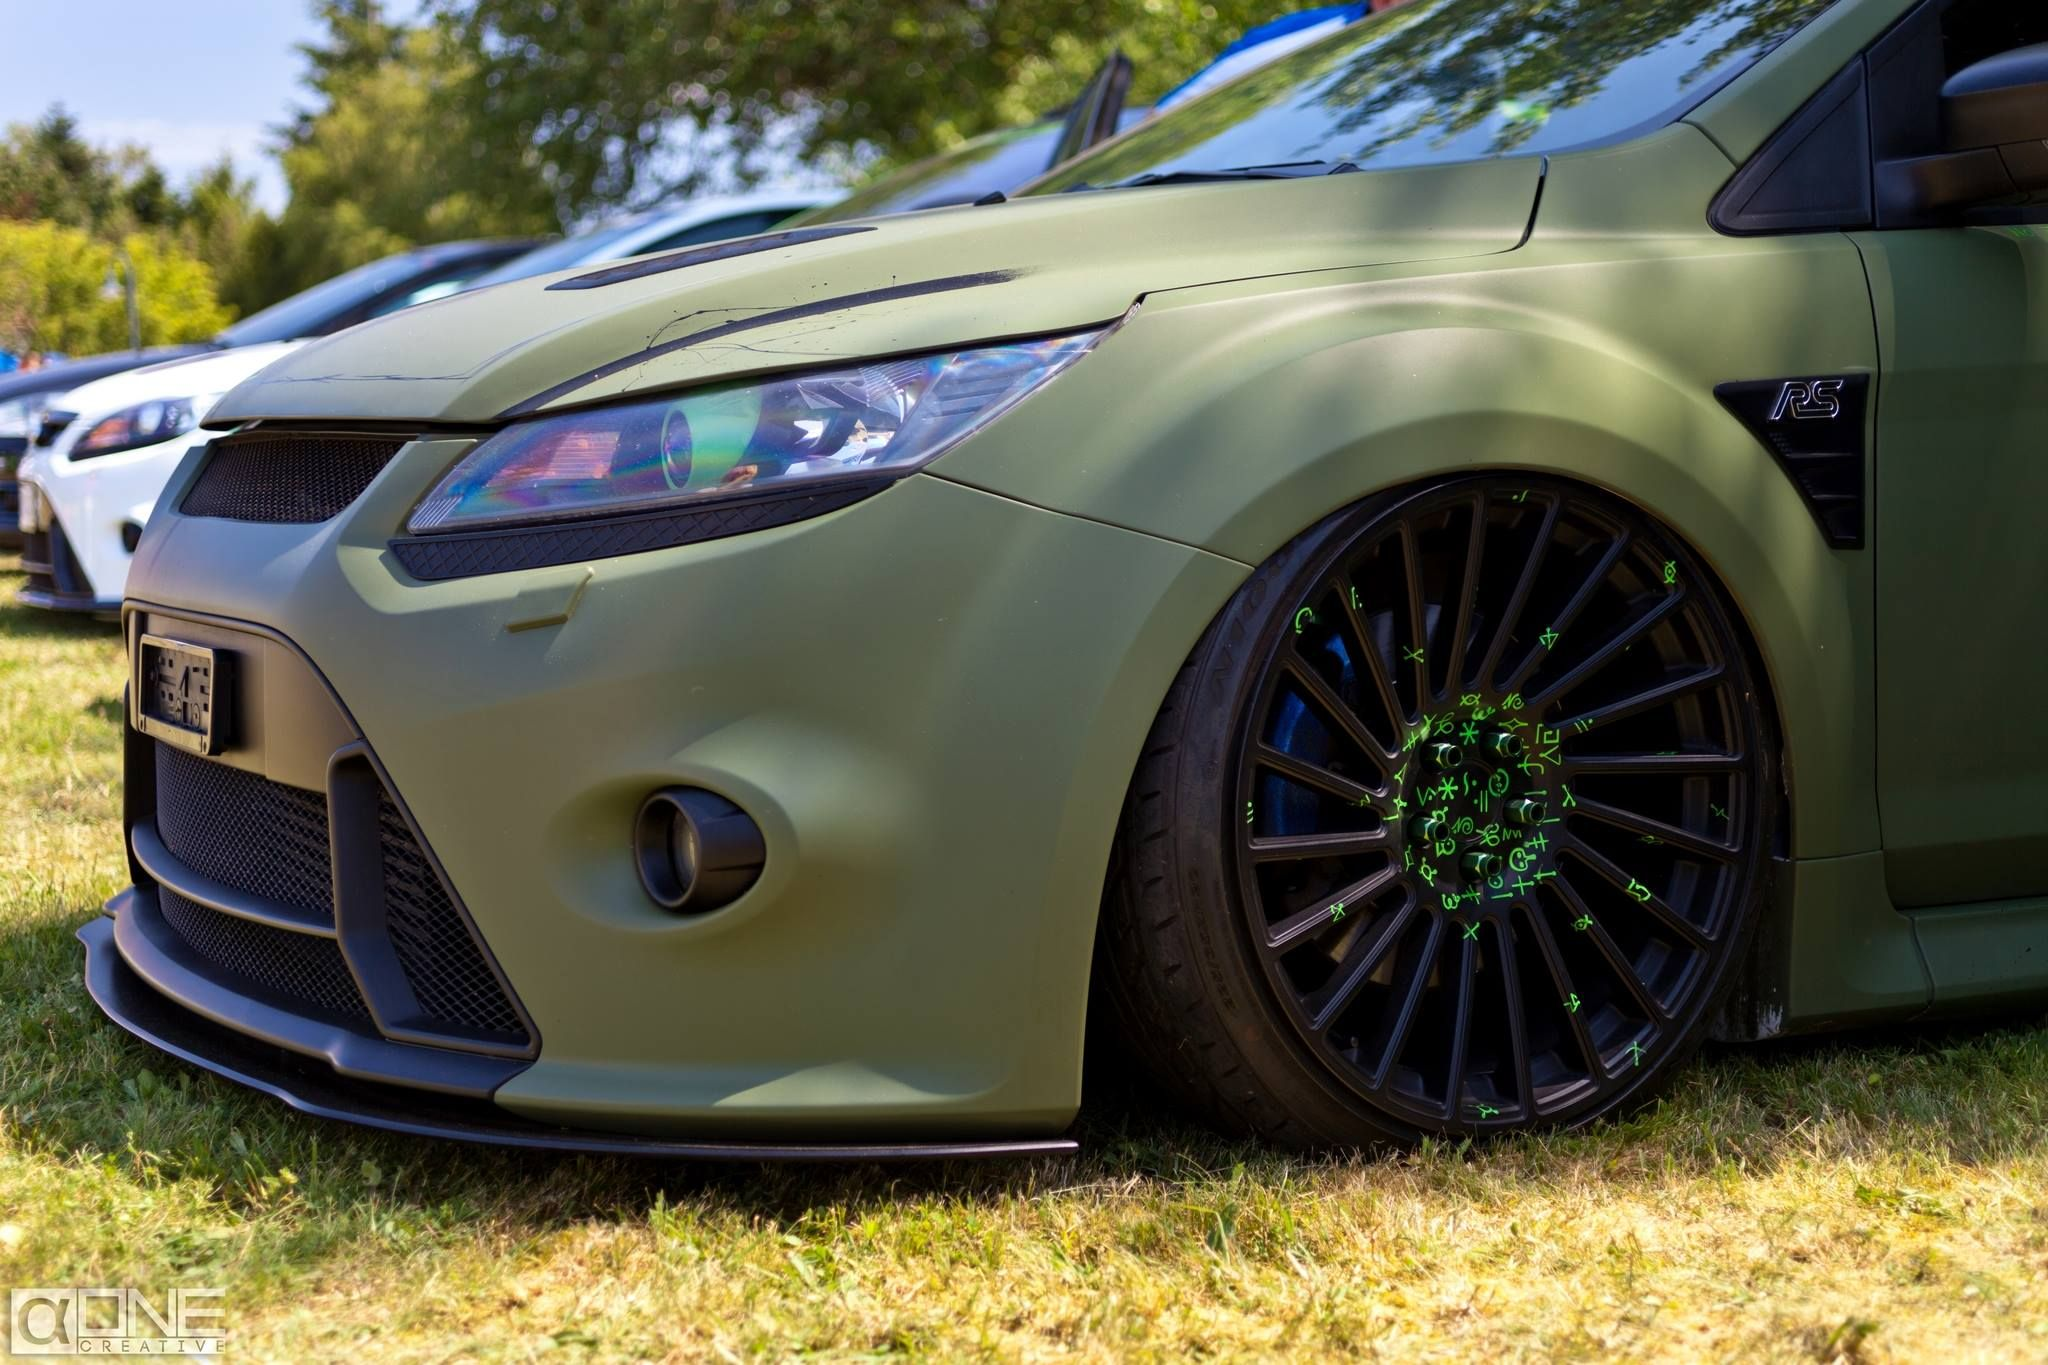 ford focus rs in army color body paint tuning ford focus. Black Bedroom Furniture Sets. Home Design Ideas